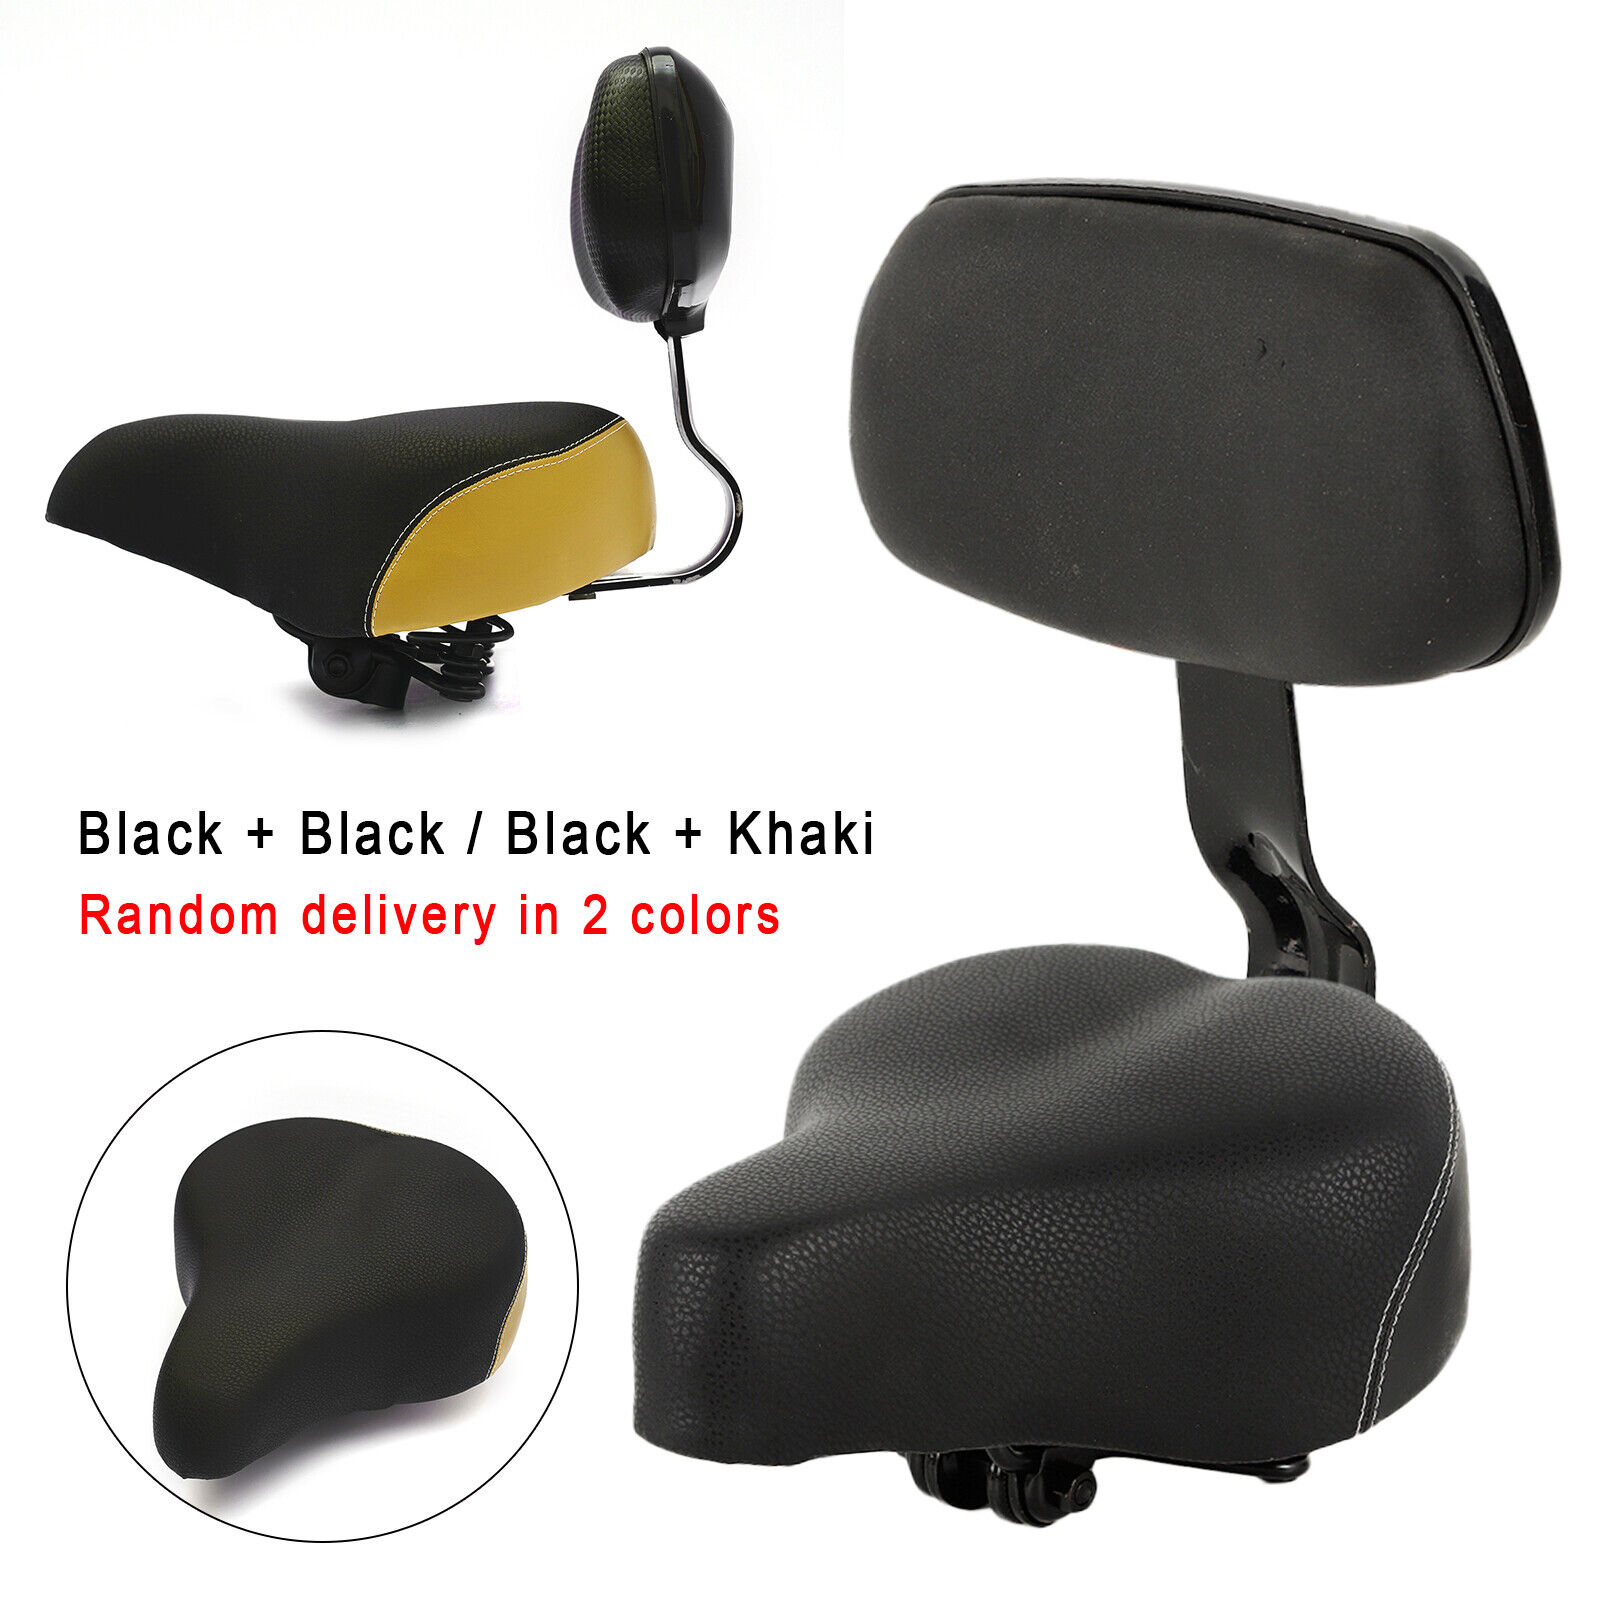 Wide PU Electric Vehicle Bicycle Tricycle Saddle Seat Pad and Back Rest Black